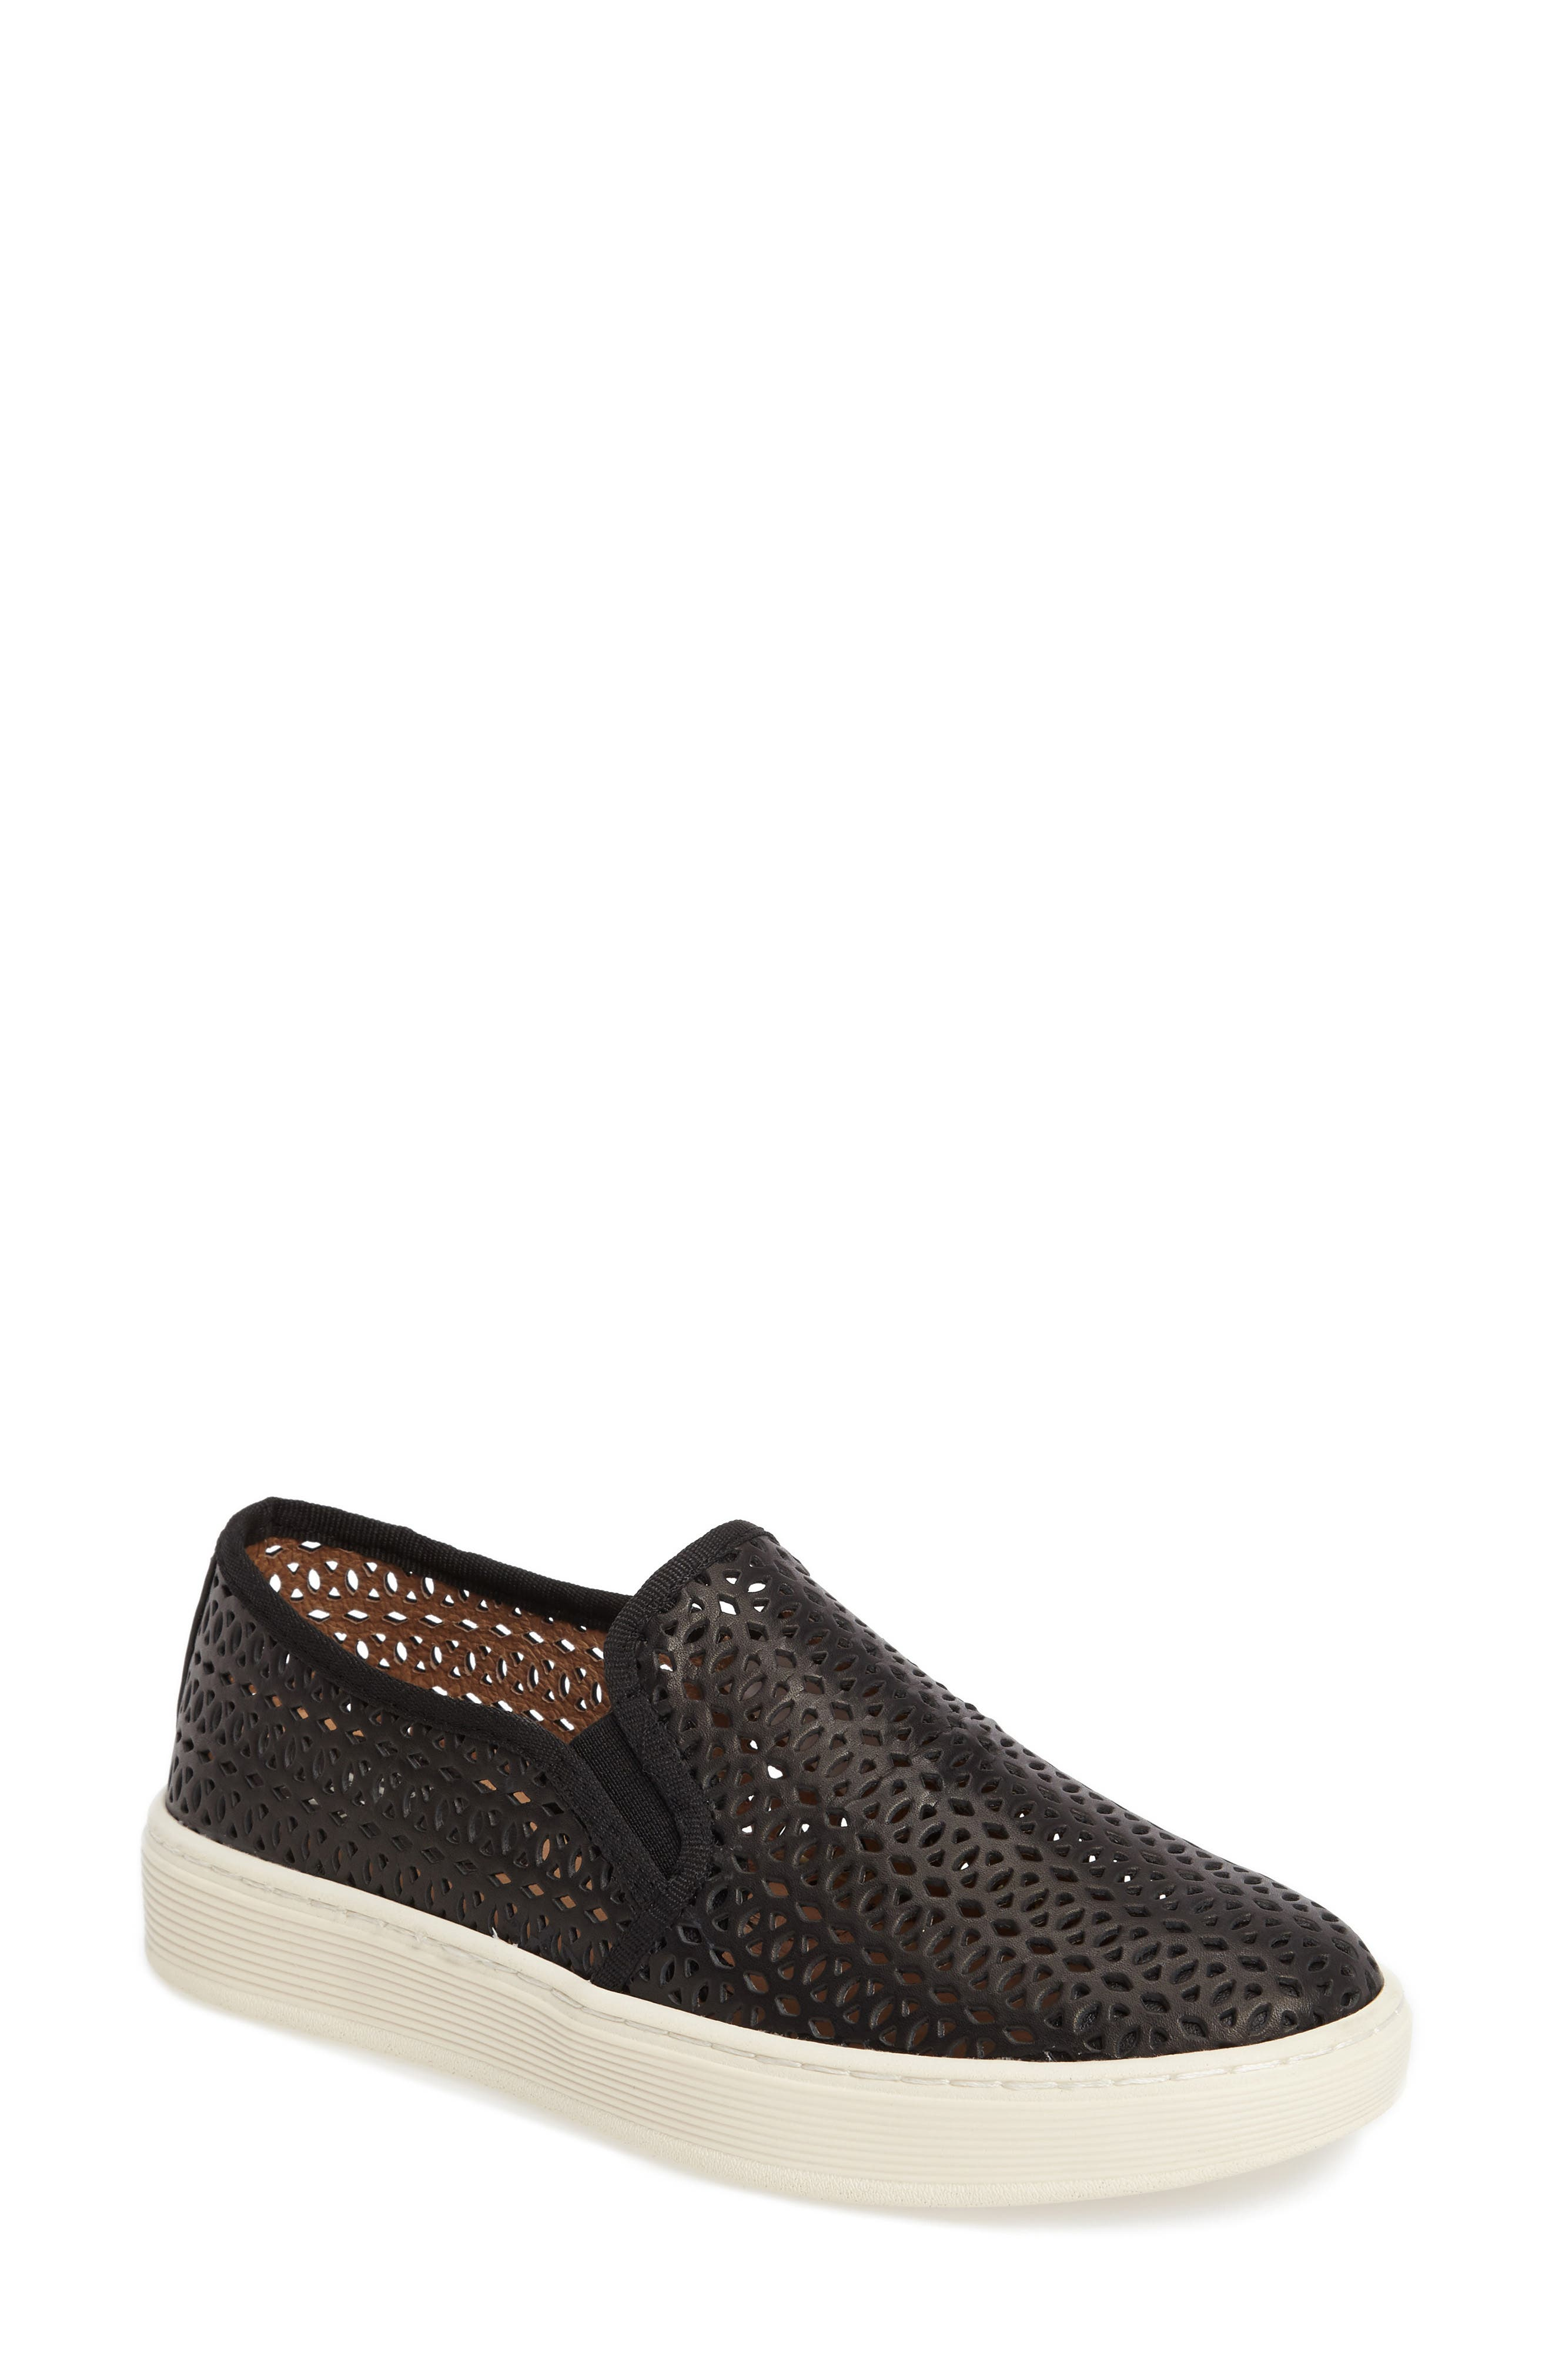 Somers II Slip-on Sneaker,                         Main,                         color, Black Perforated Leather